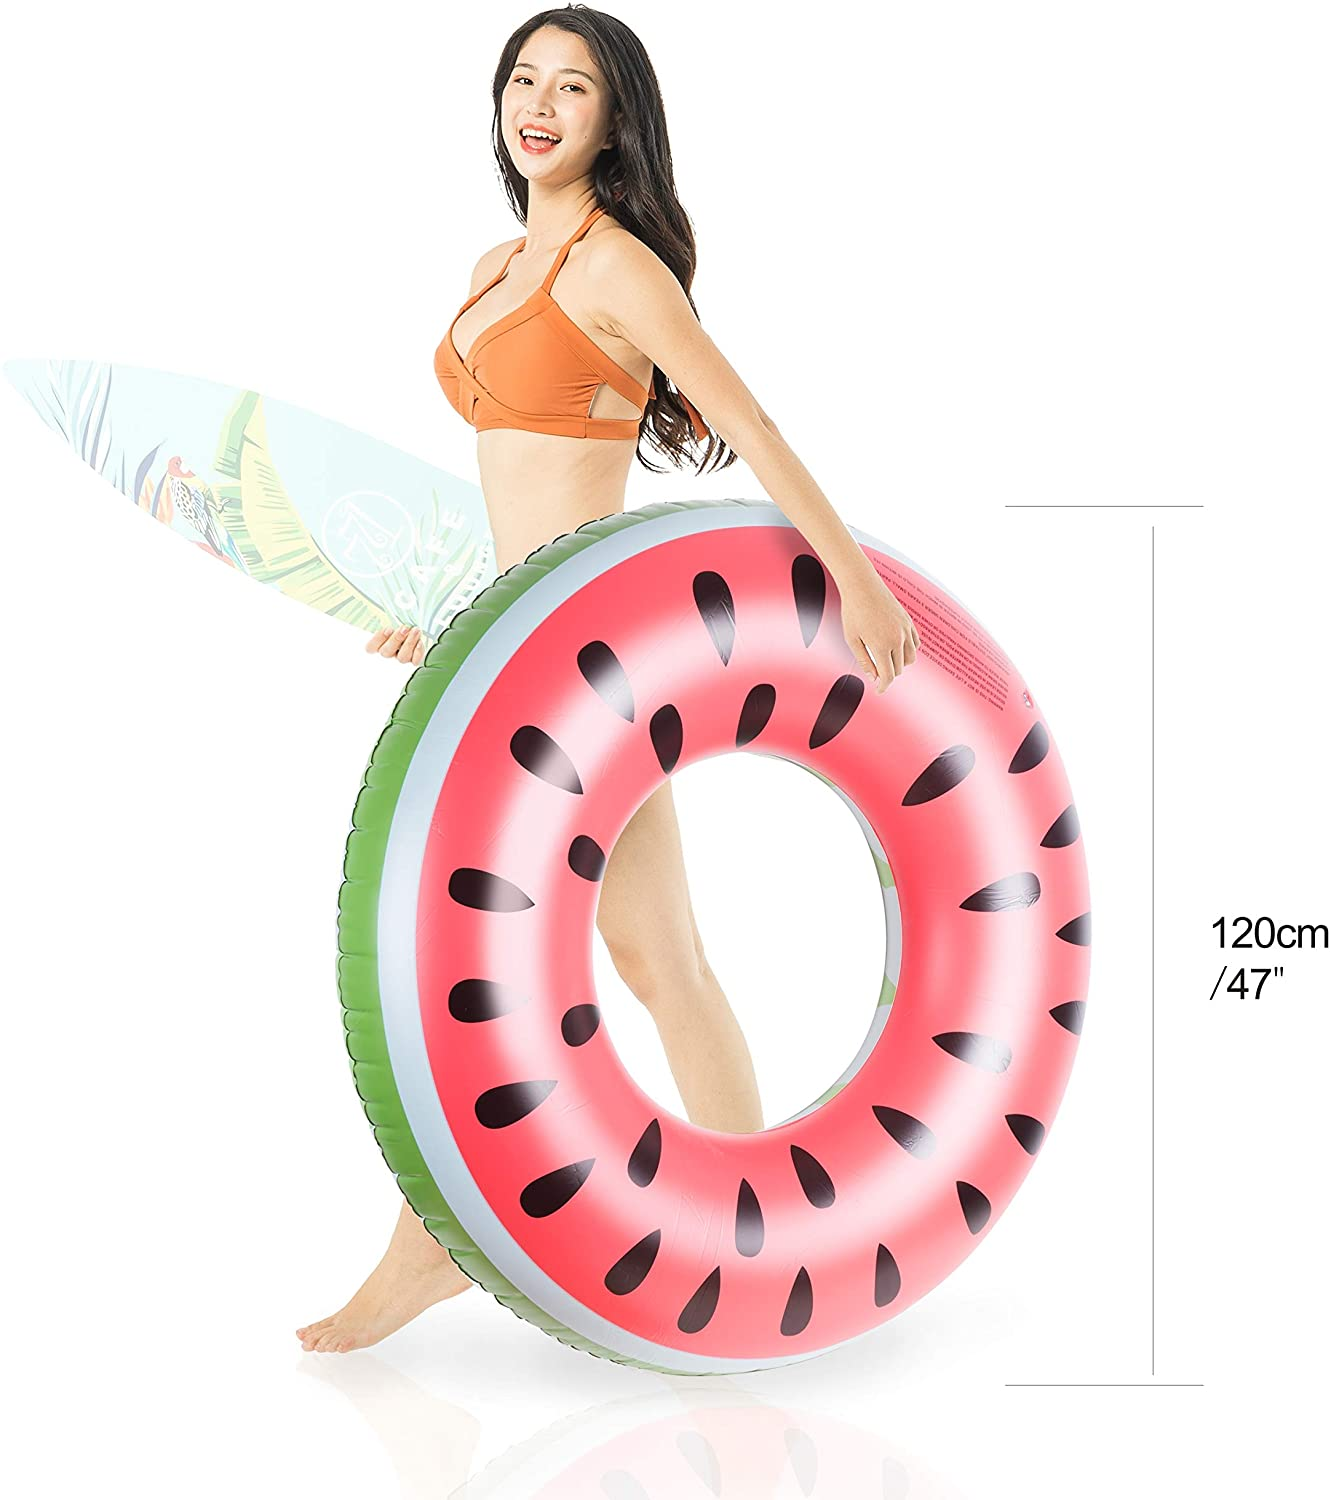 HPOW 47 inch Watermelon Swim Ring - Protective Design of Extension-Type Charging (Watermelon 1)